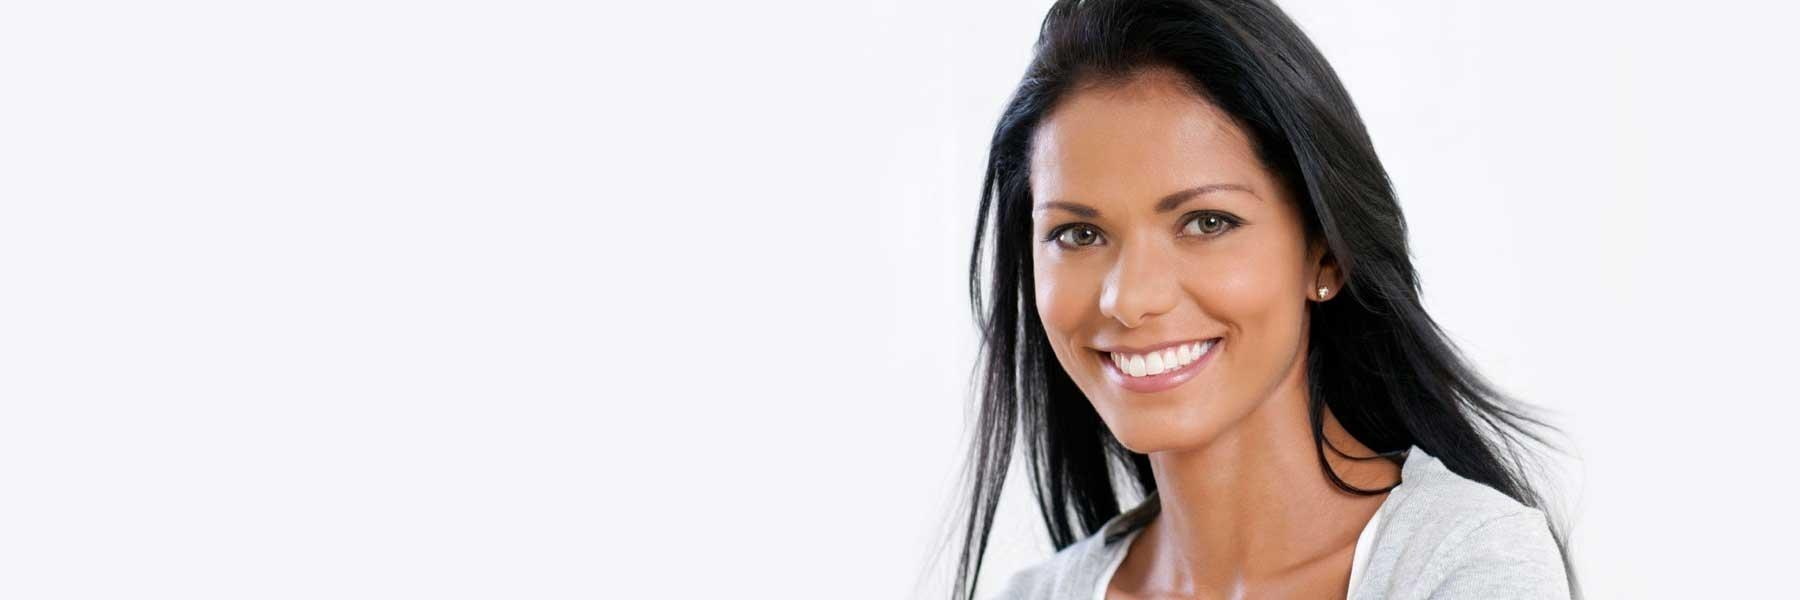 Winter Springs, FL Cosmetic Dentistry banner image